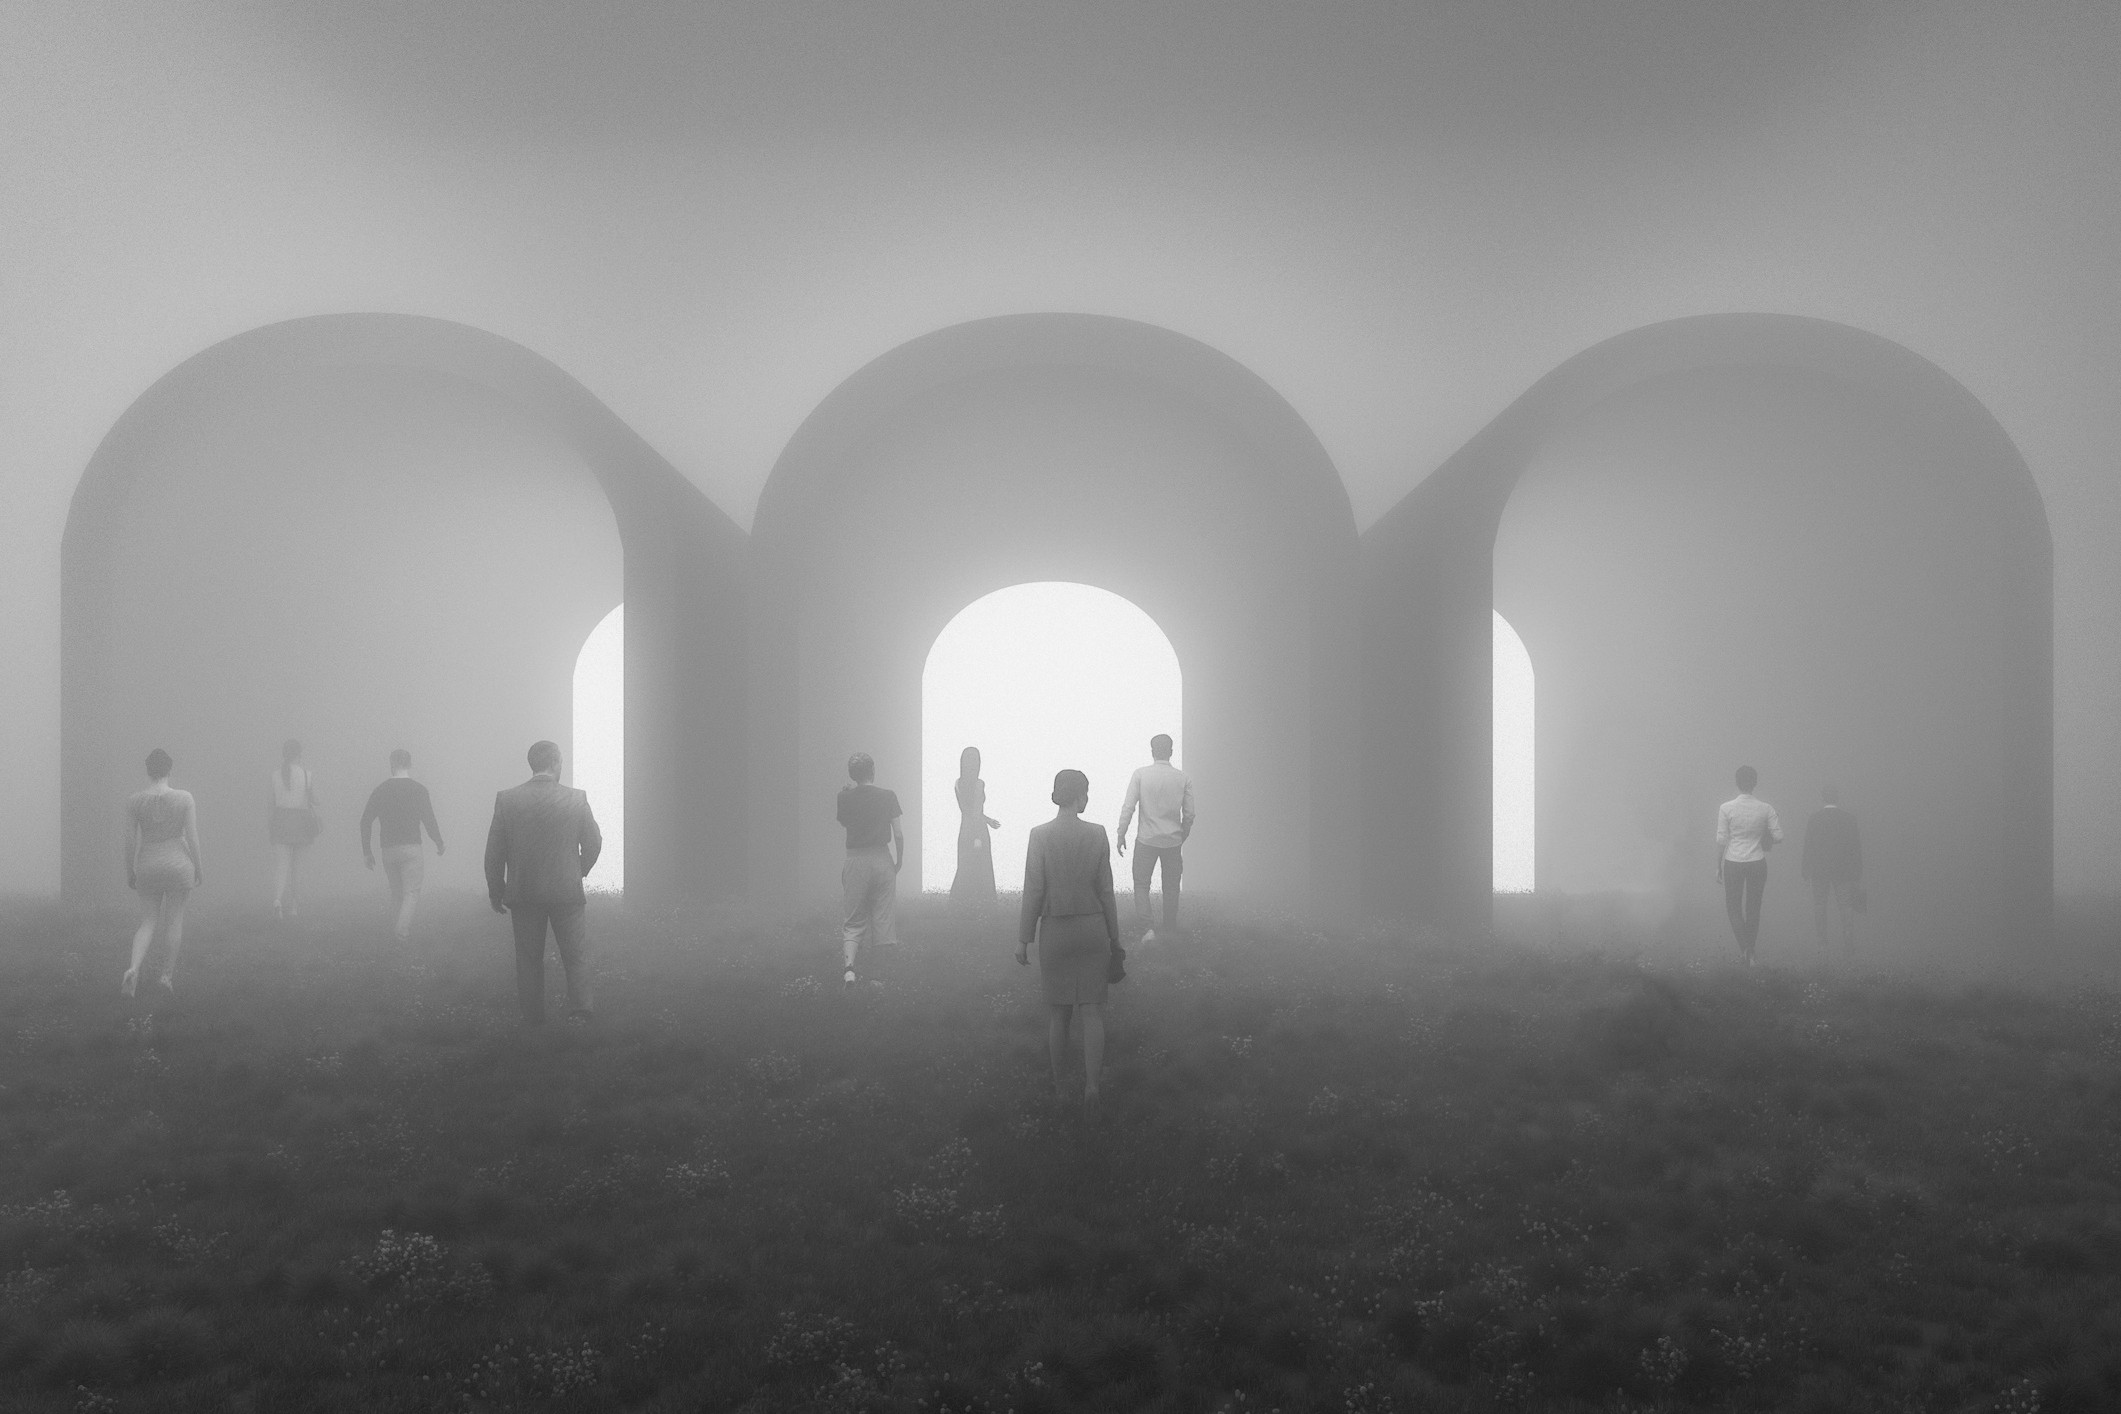 Business people walking towards mysterious tunnels. This is entirely 3D generated image.